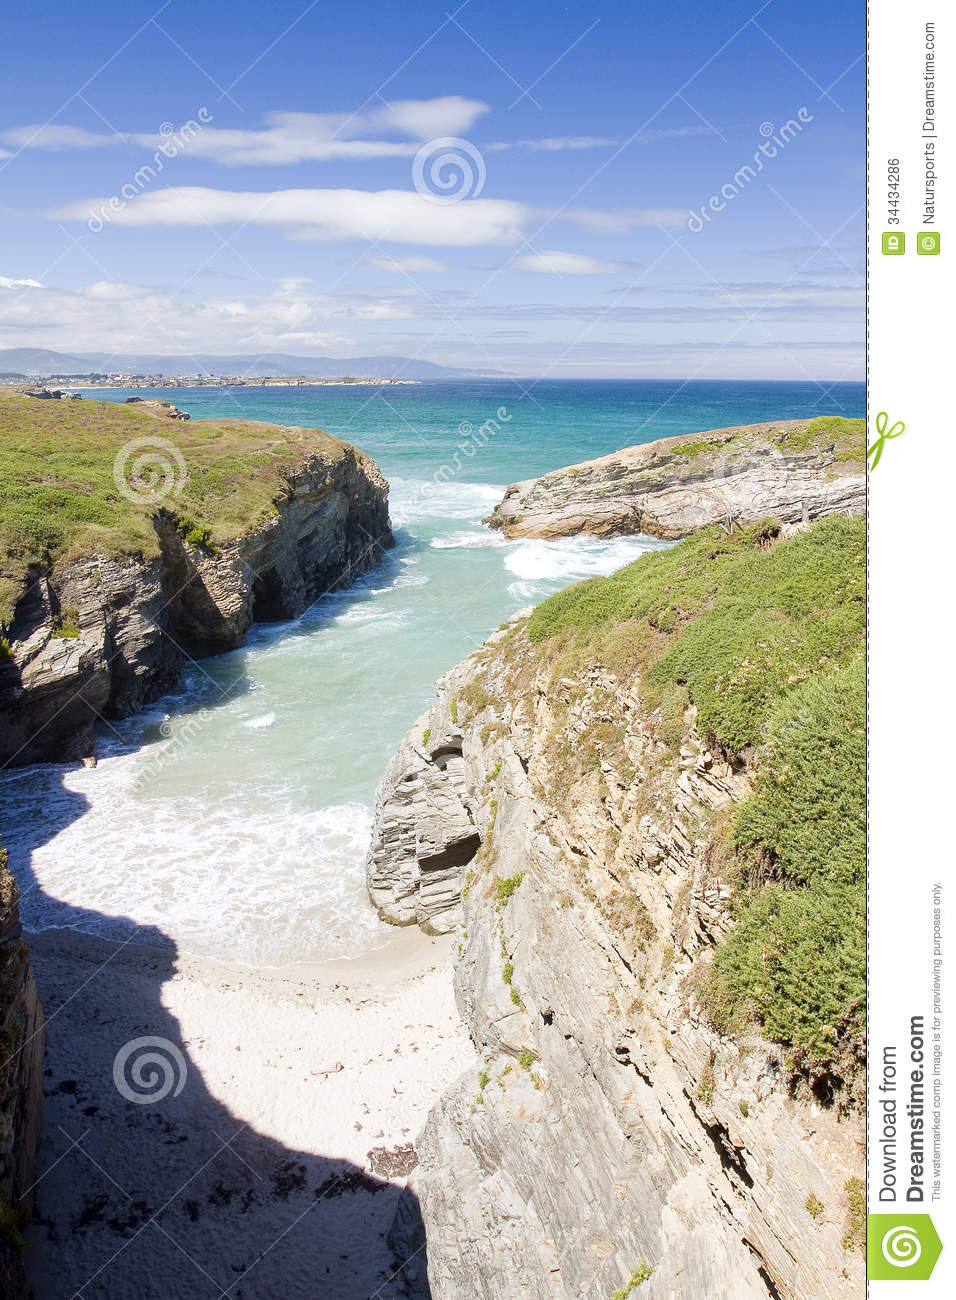 As Catedrais Beach, Spain Royalty Free Stock Image - Image: 34434286